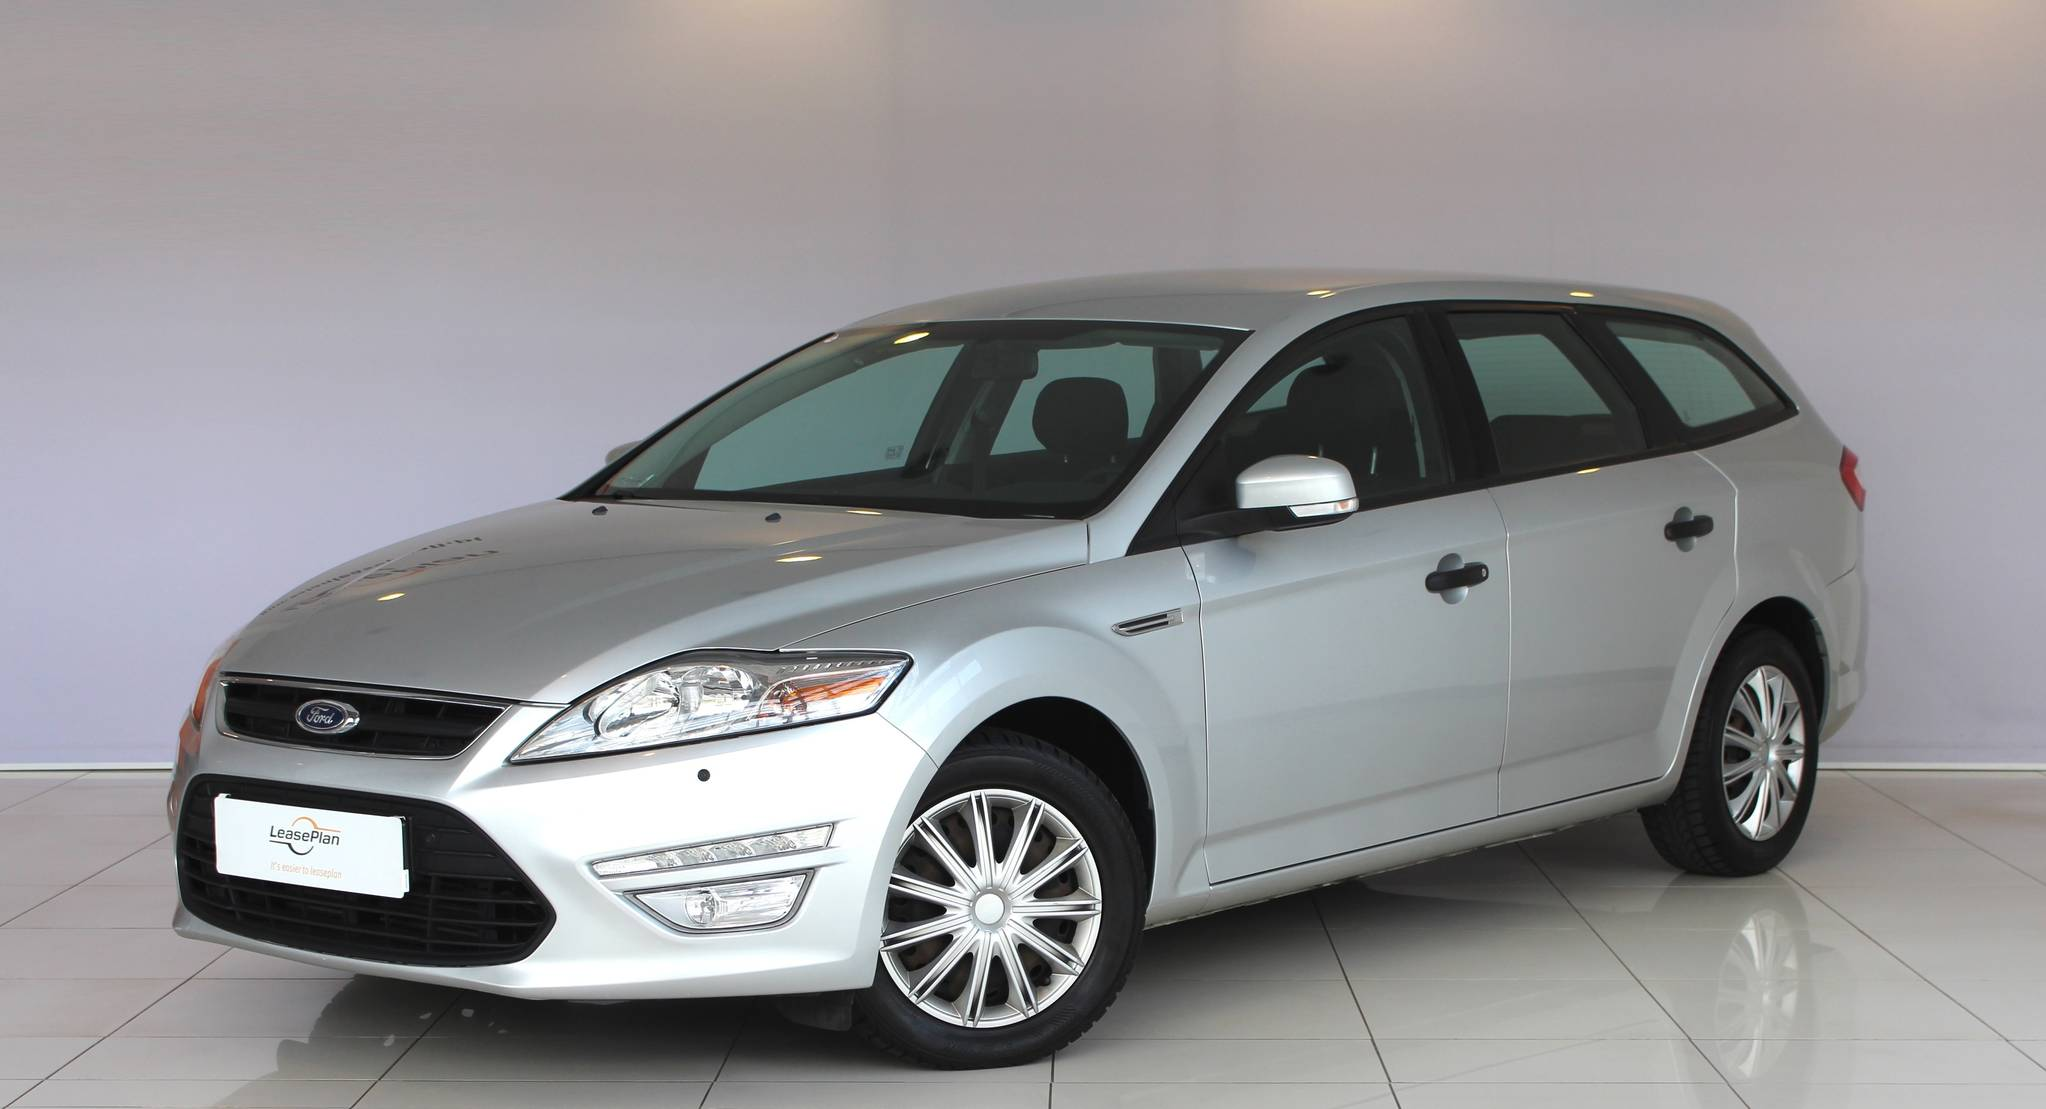 Ford Mondeo Turnier 2.0 TDCi, Ambiente detail1